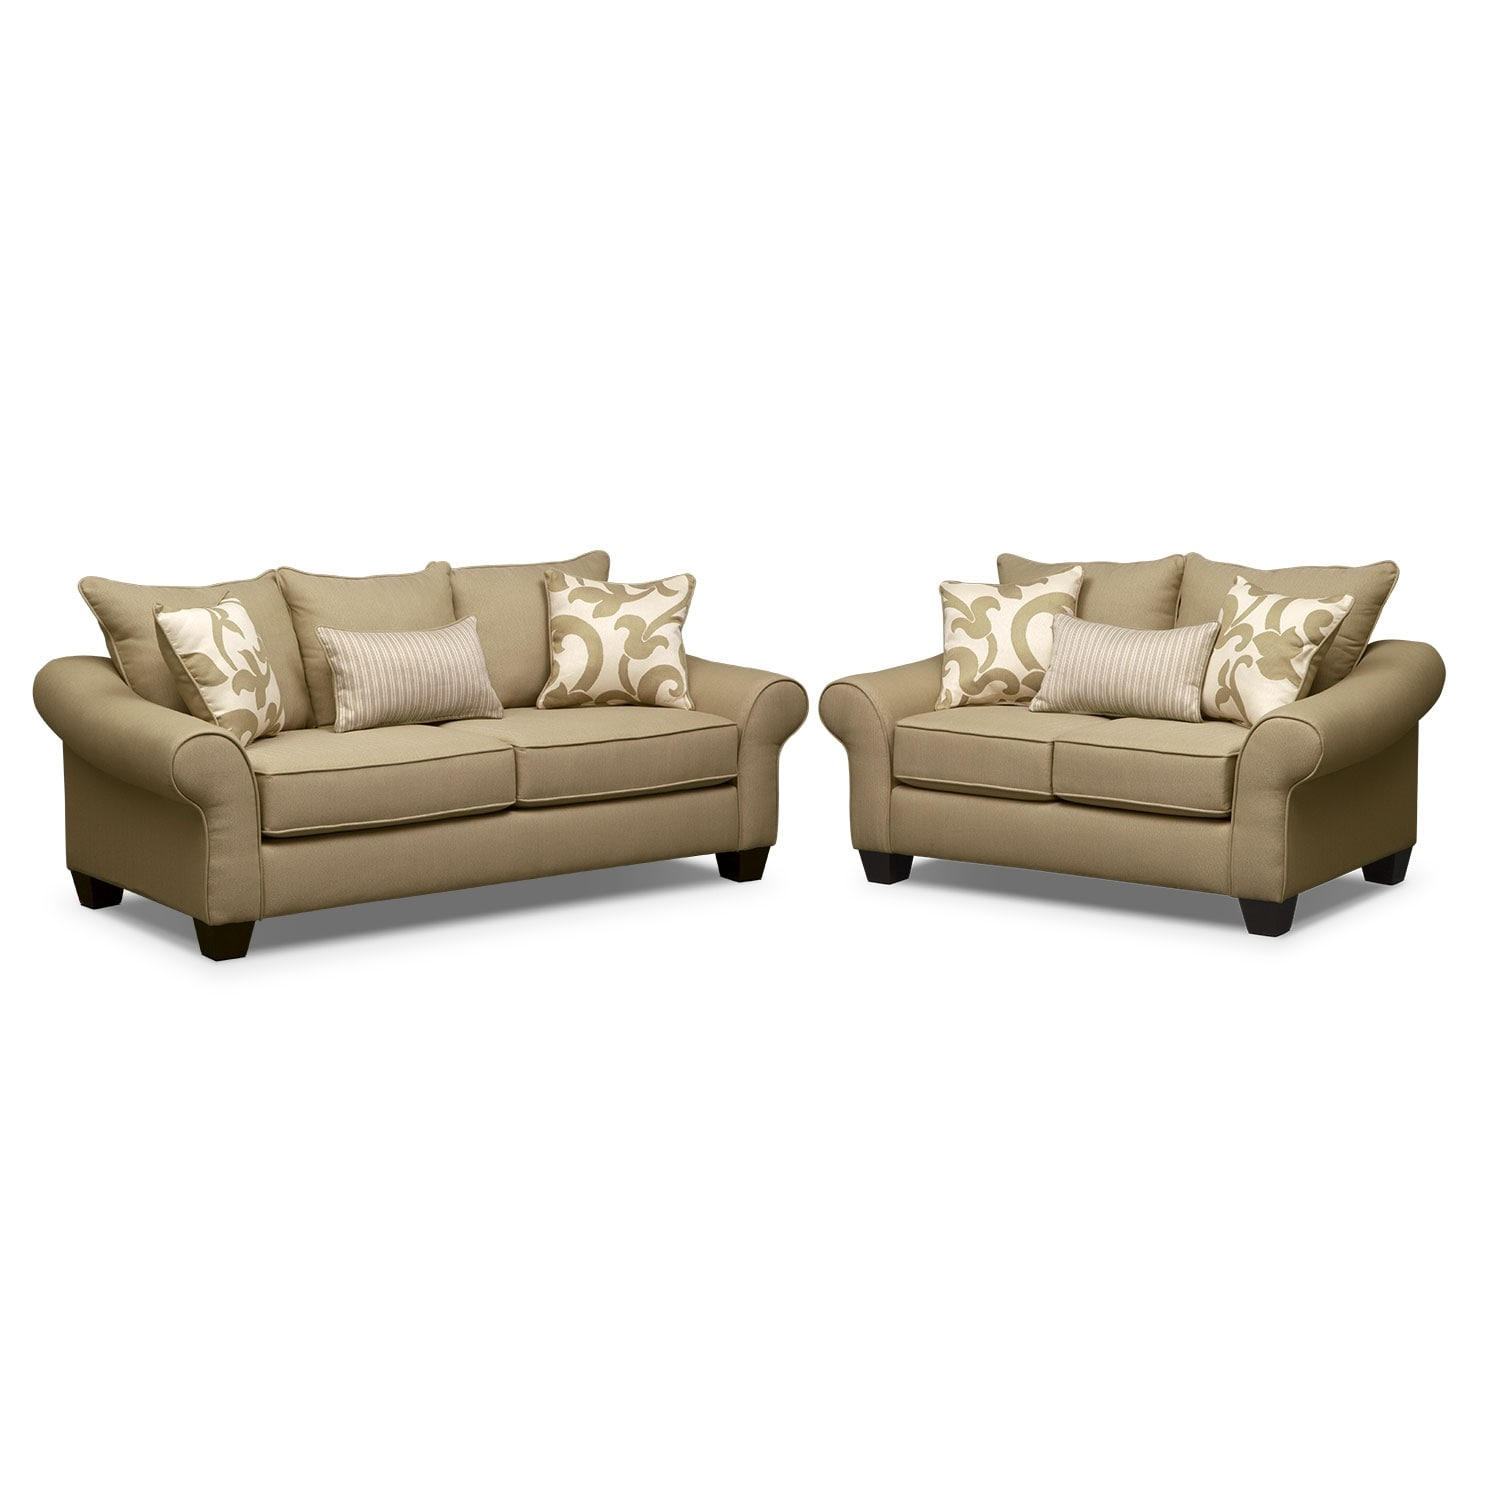 Colette Full Memory Foam Sleeper Sofa And Loveseat Set